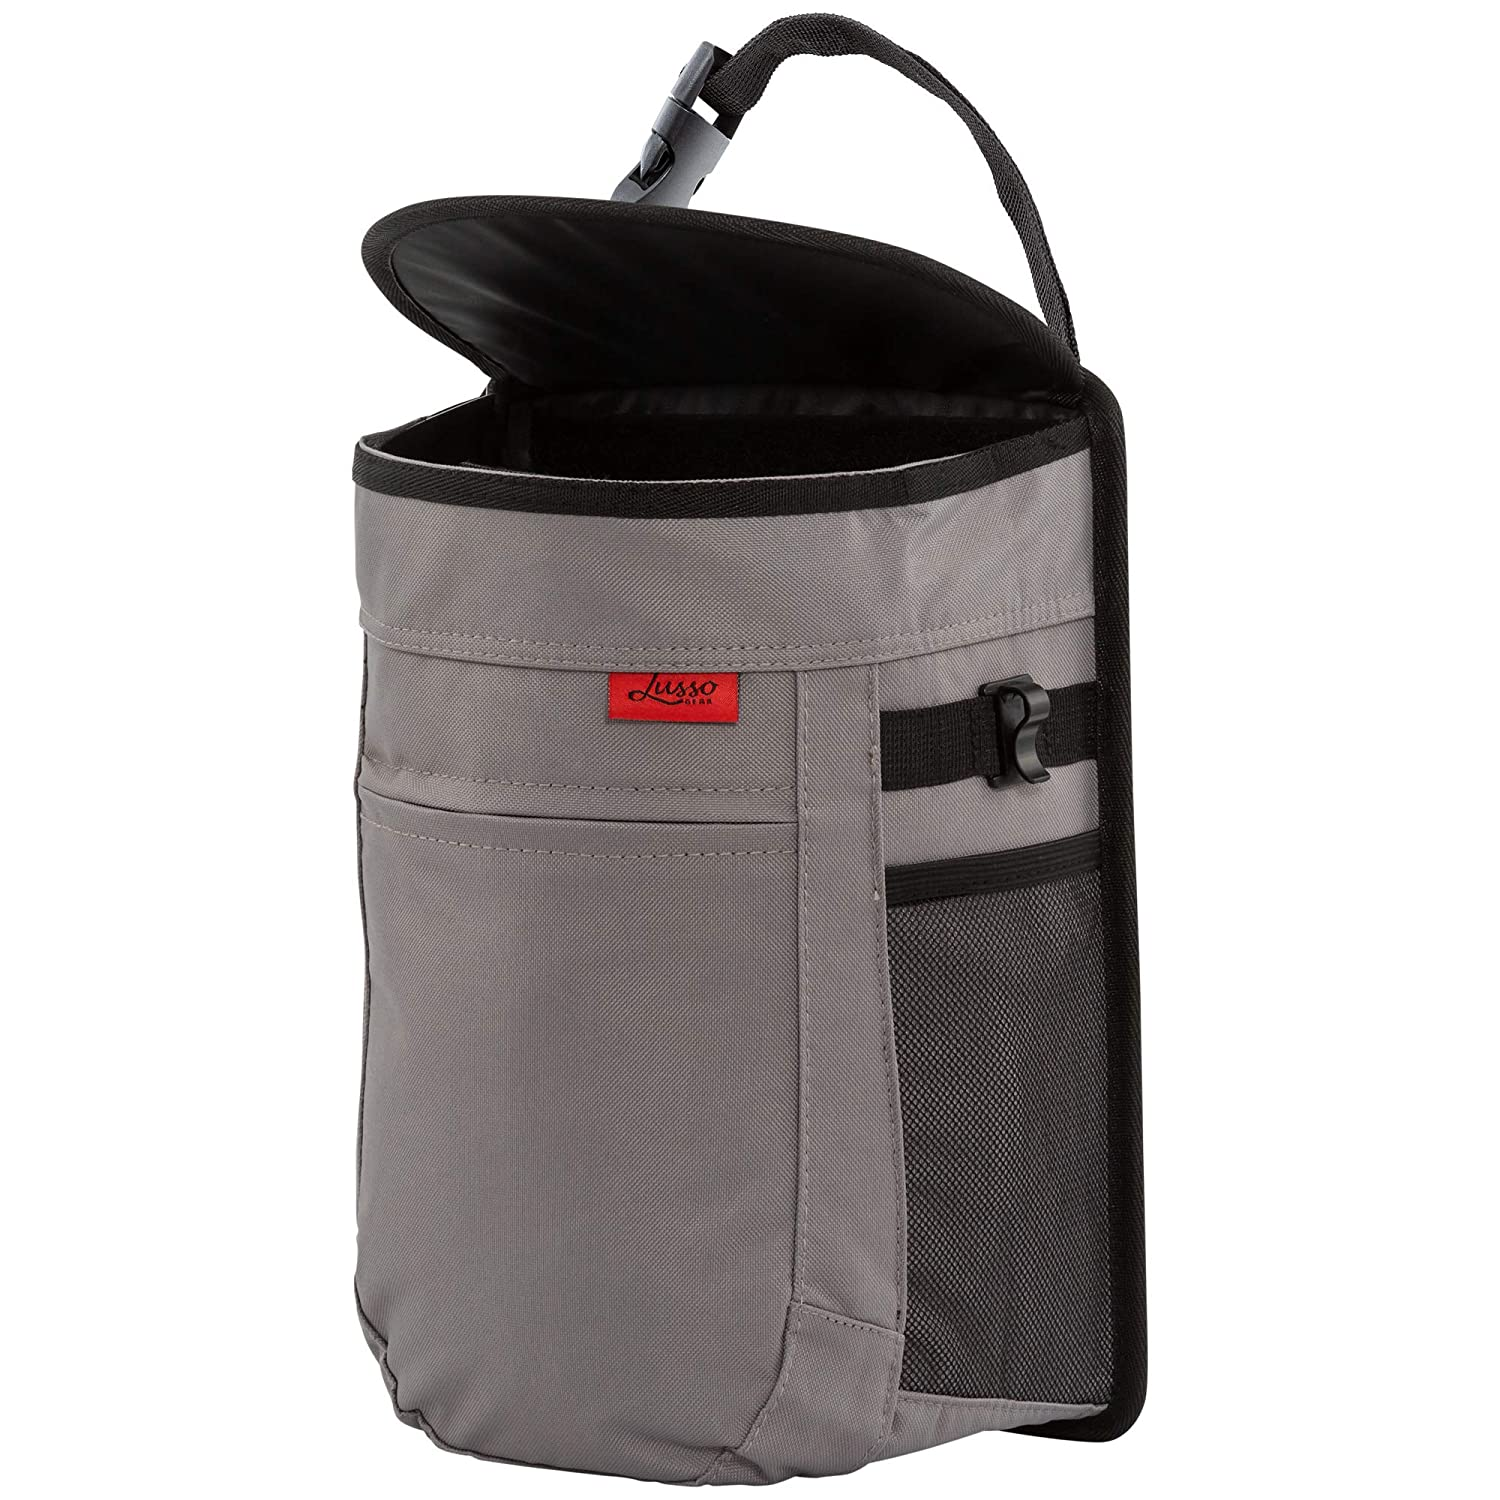 Easy Hanging or Mounting In Car//Truck//Minivan//SUV//Auto Vinyl Leakproof//Removable Trash Liner Flip Open Lid Compact Design Lusso Gear Car Trash Can Large 2.5 Gallon Capacity Storage Pockets